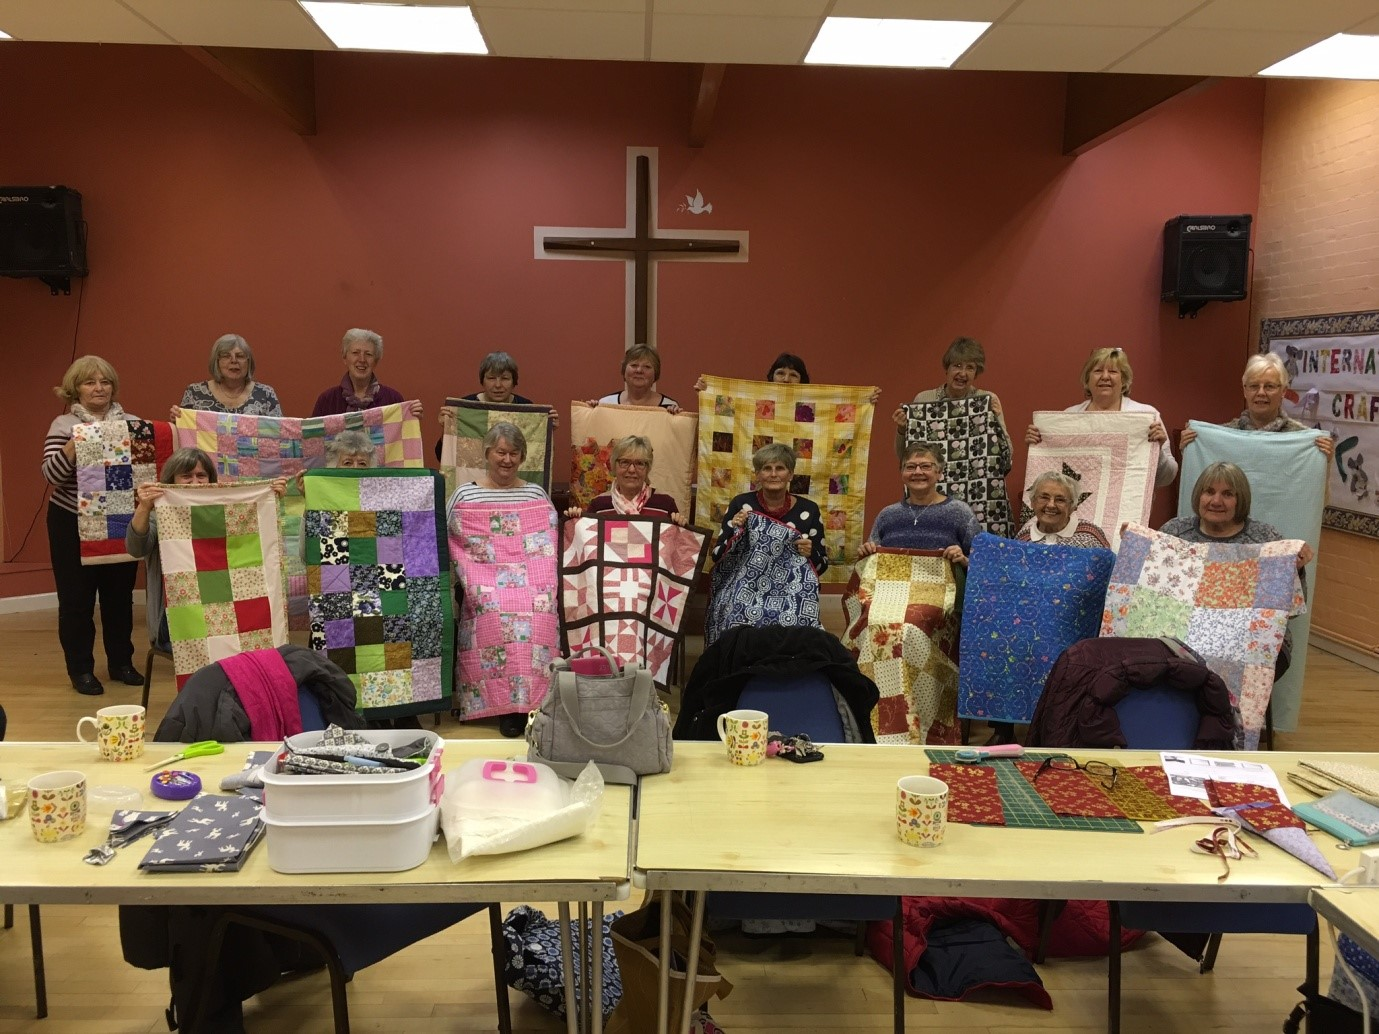 The craft and sewing group